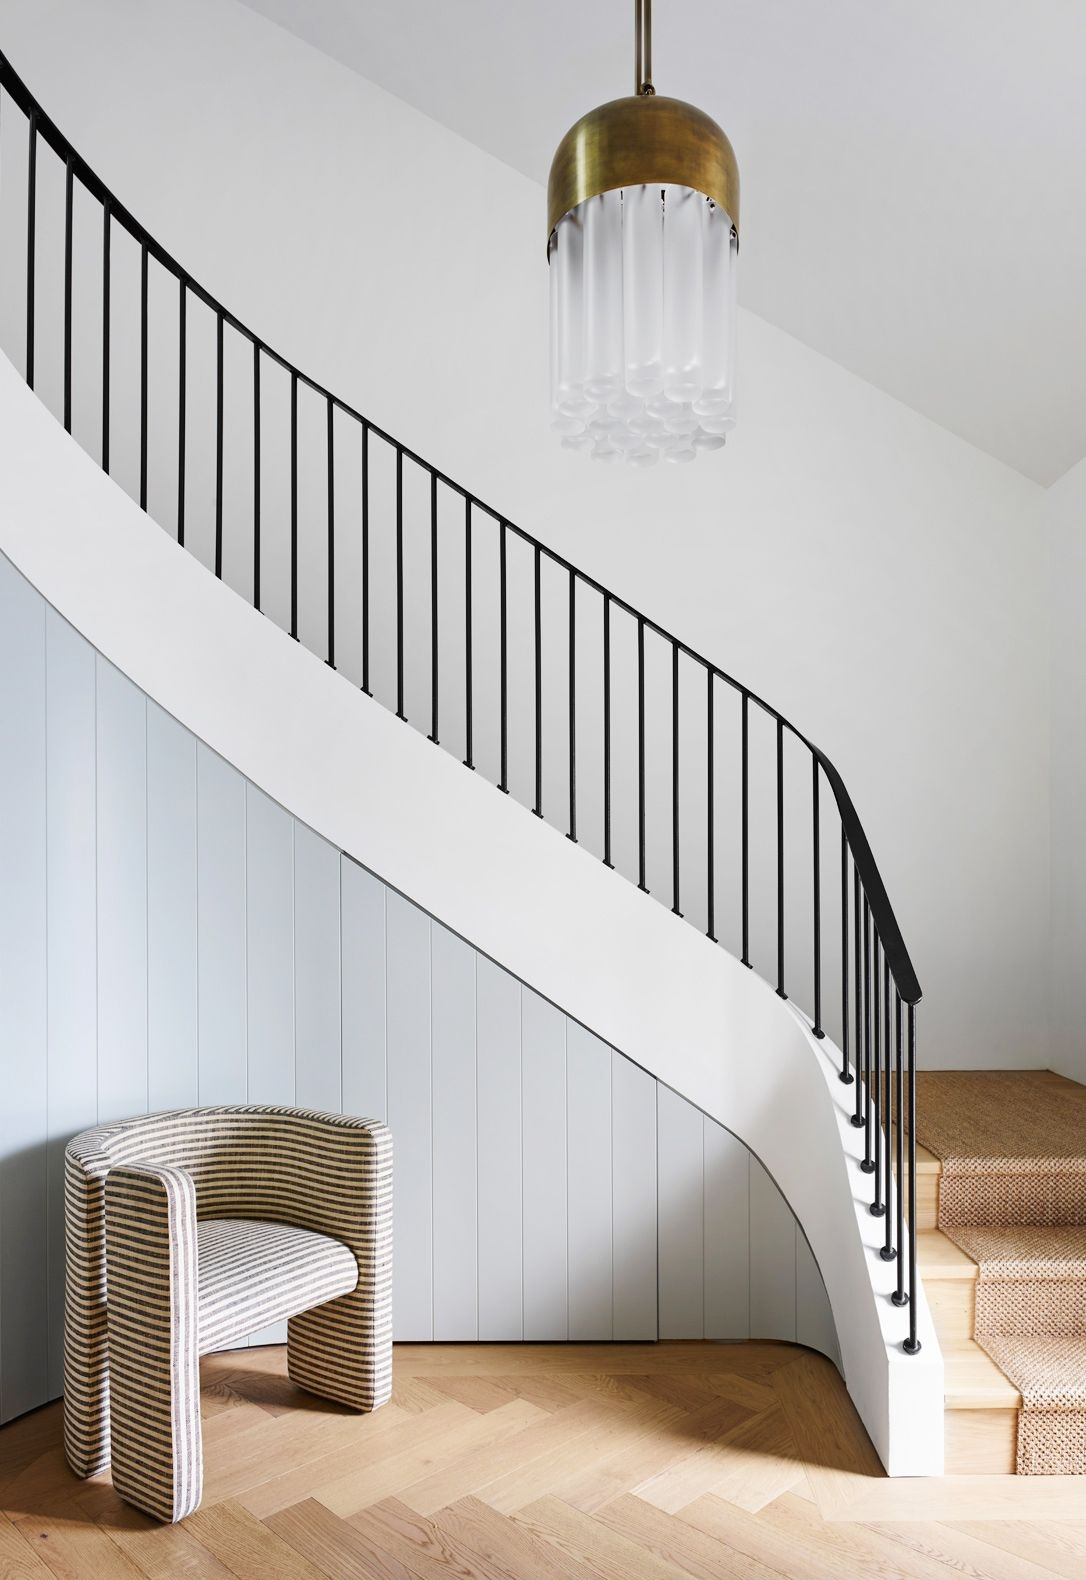 25 Unique Stair Designs Beautiful Stair Ideas For Your House | Stairs Design Inside Home | Traditional | Iron | Amazing | Outside | Short